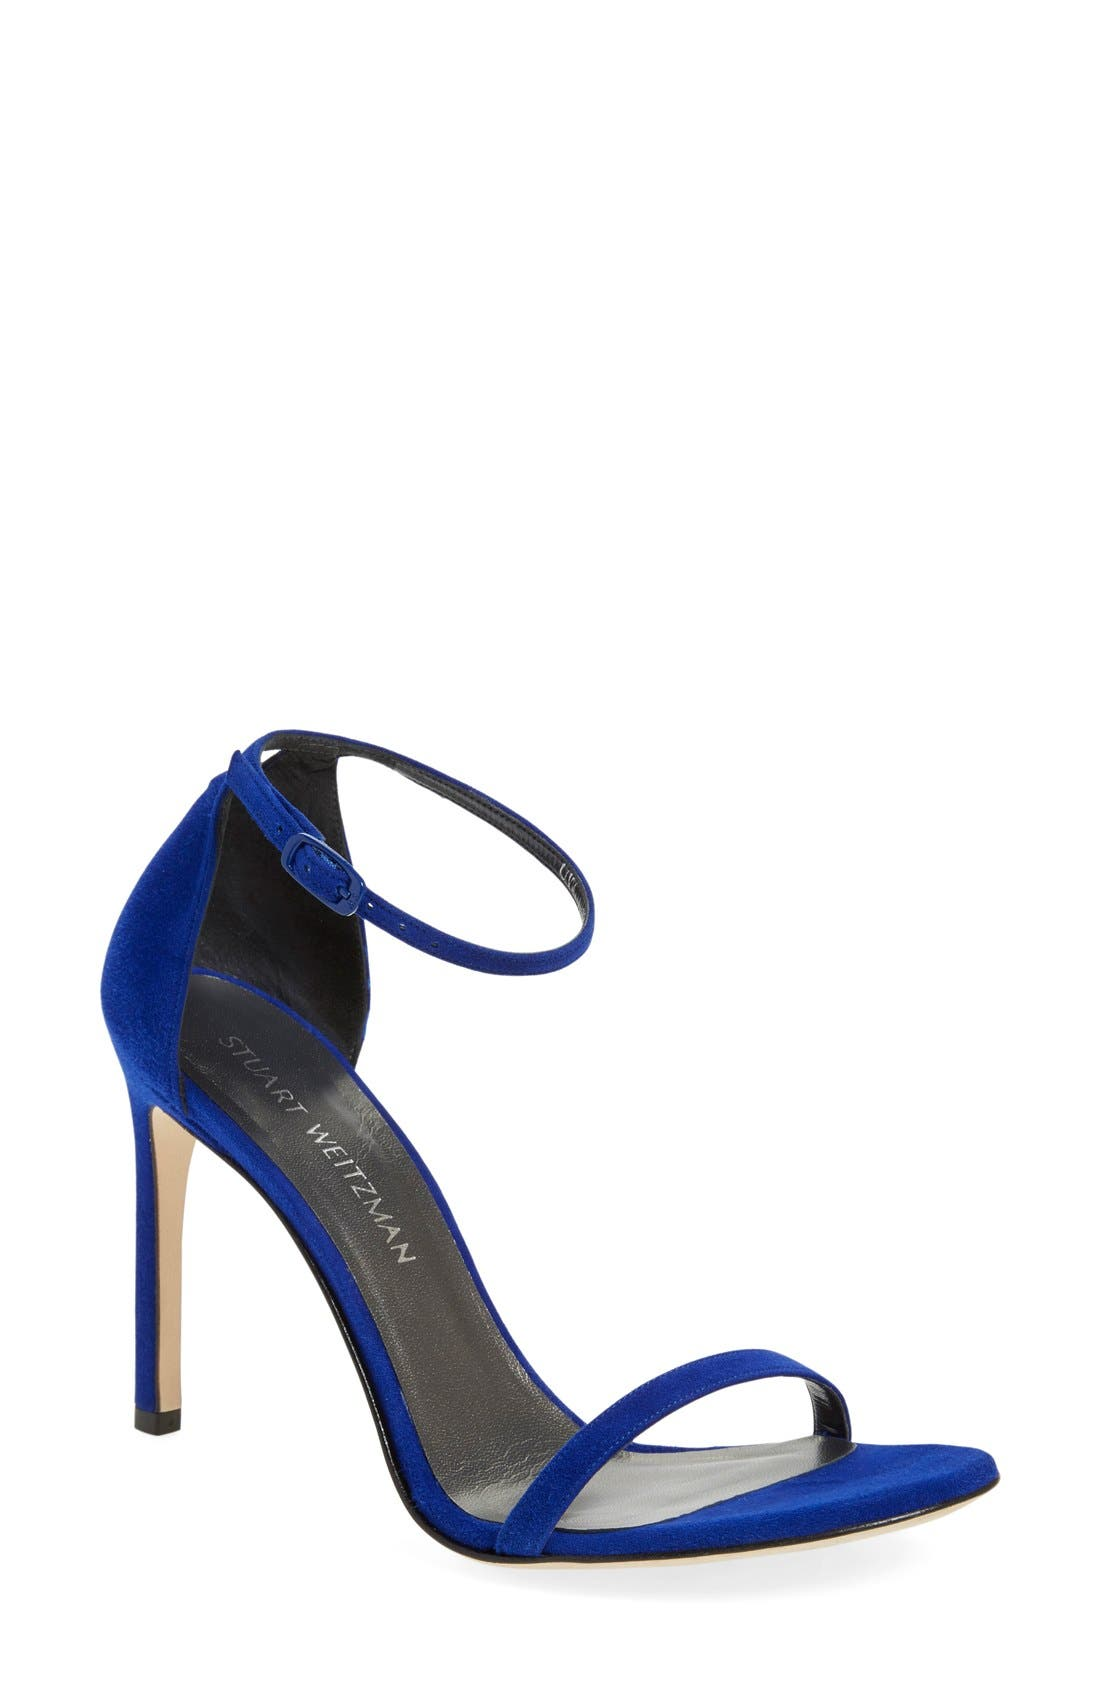 Nudistsong Ankle Strap Sandal,                             Main thumbnail 33, color,